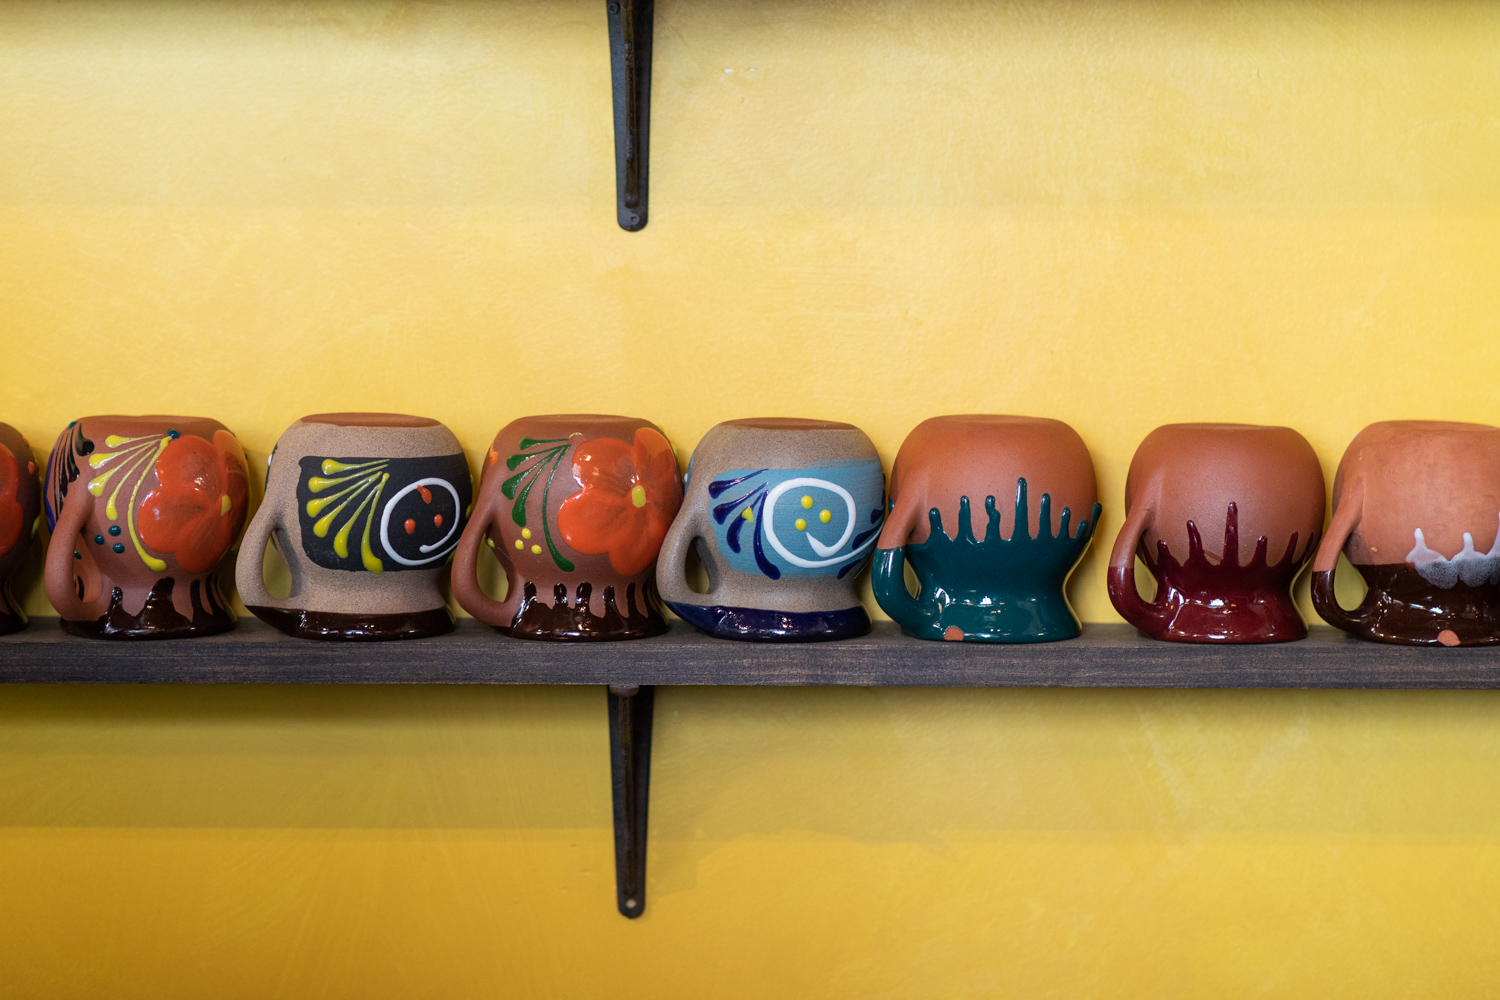 On the shelves of El Tesoro are these Mexican taza de barro mugs, which are made of clay.